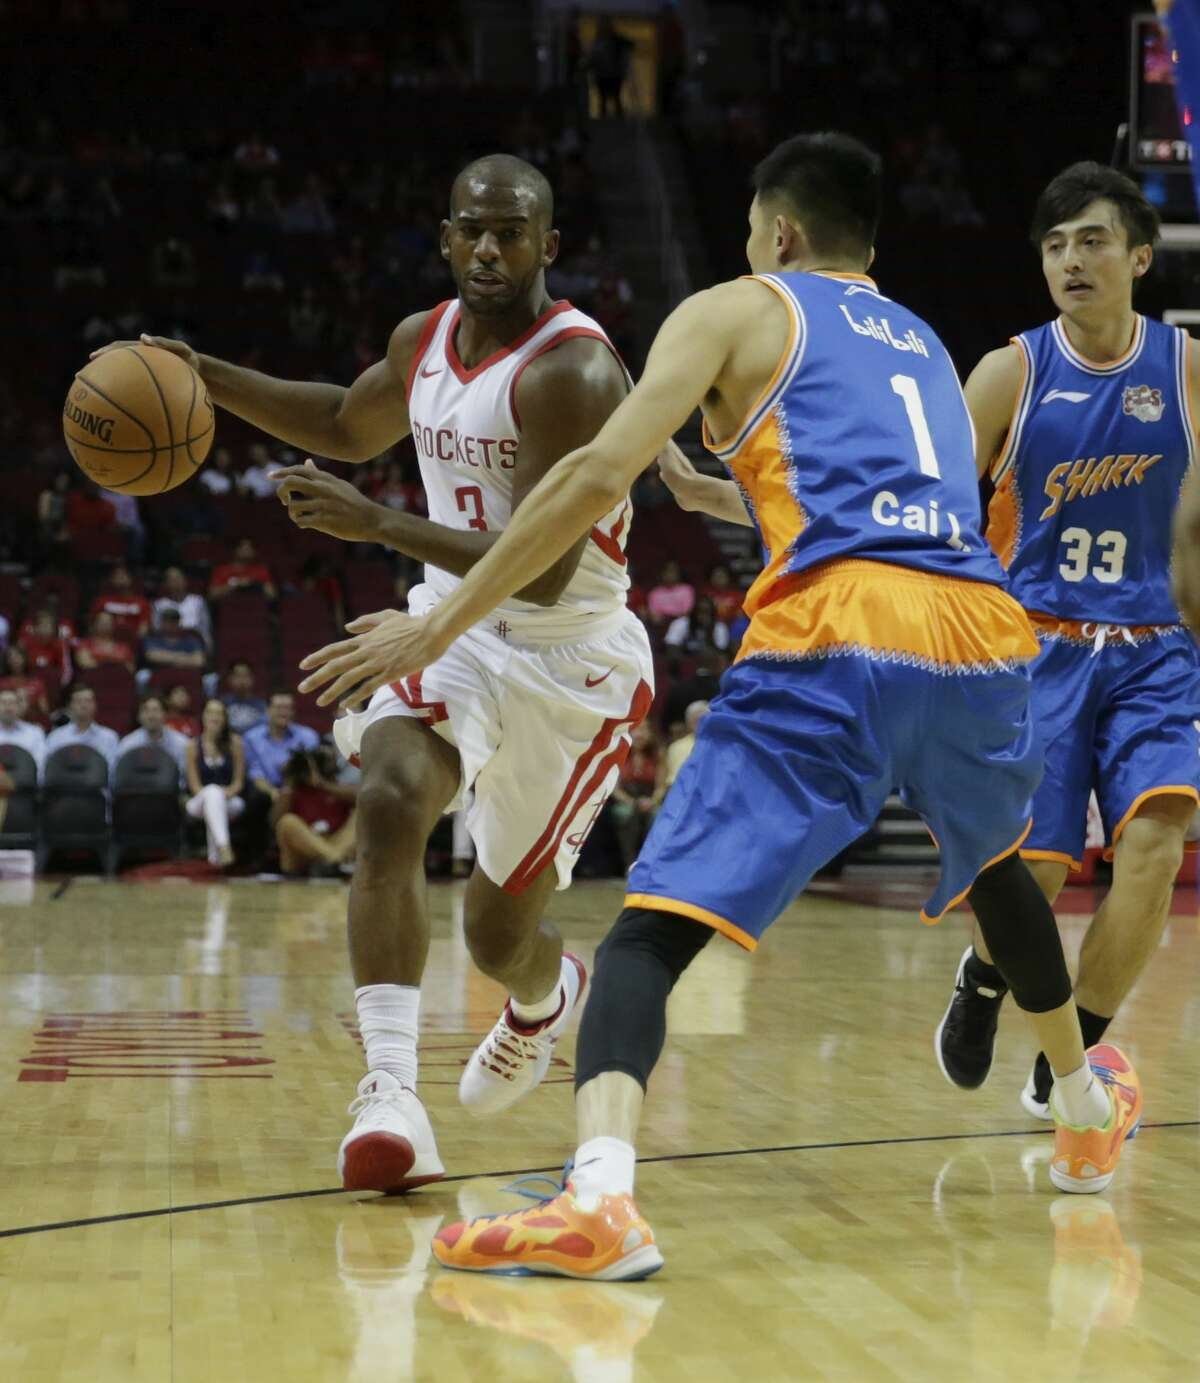 HOUSTON, TX - OCTOBER 05: Chris Paul #3 of Houston Rockets drives the ball in the first quarter defended by Cai Liang #1 of Shanghai Sharks at Toyota Center on October 5, 2017 in Houston, Texas. NOTE TO USER: User expressly acknowledges and agrees that, by downloading and or using this Photograph, user is consenting to the terms and conditions of the Getty Images License Agreement. (Photo by Tim Warner/Getty Images)